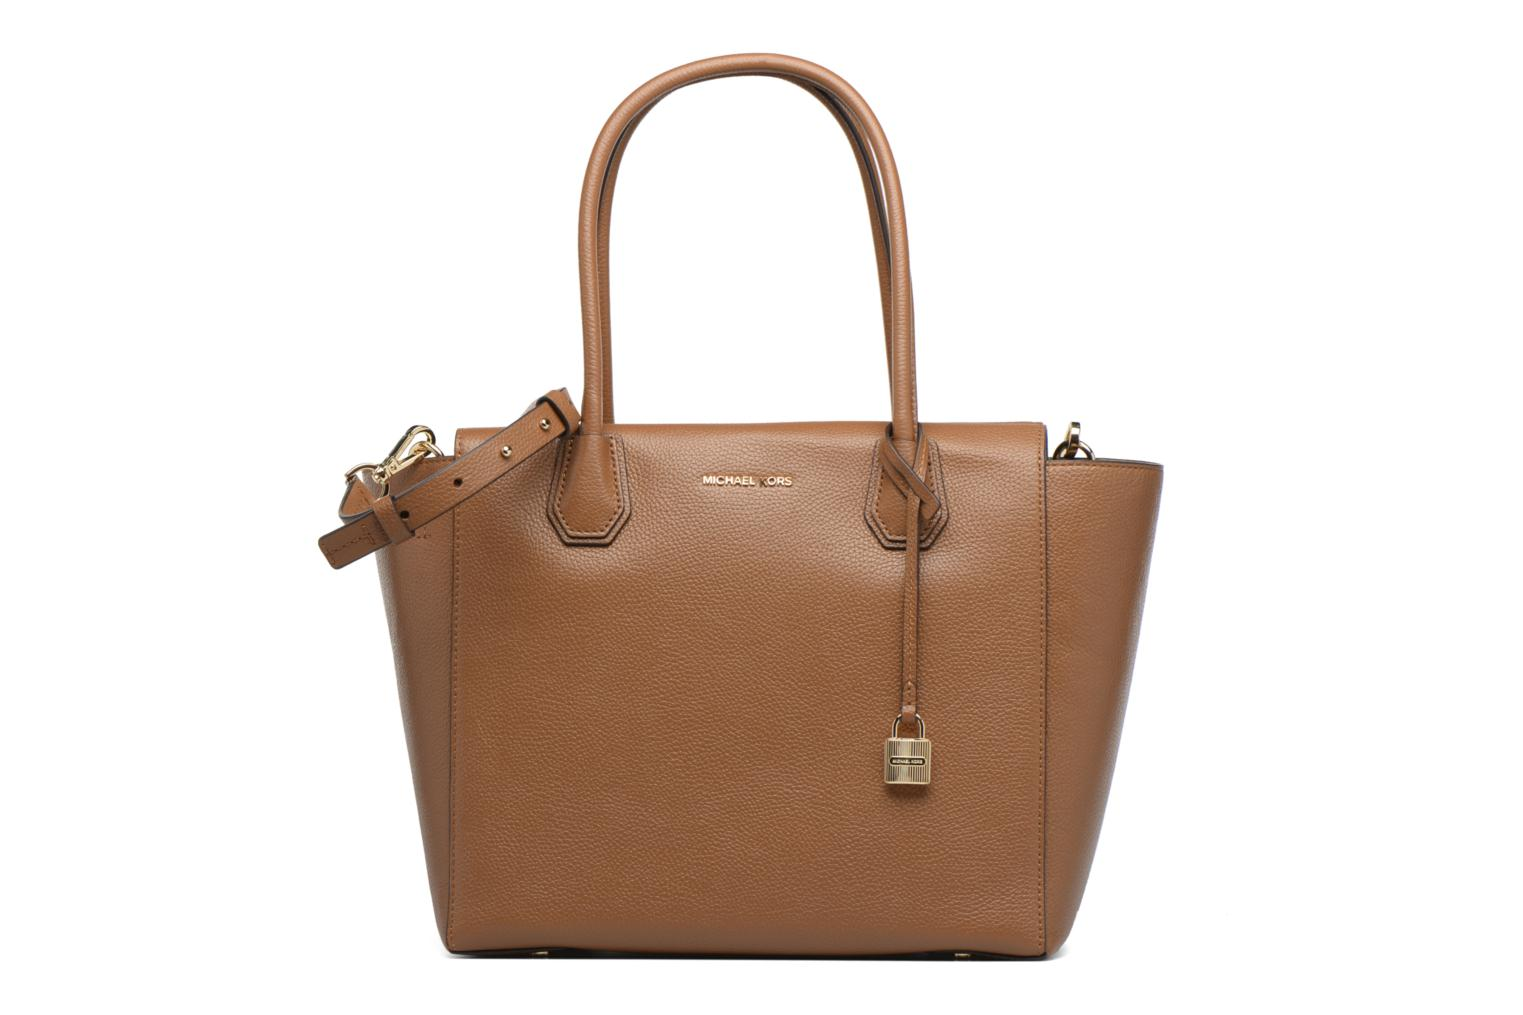 MERCER LG SATCHEL 230 Luggage